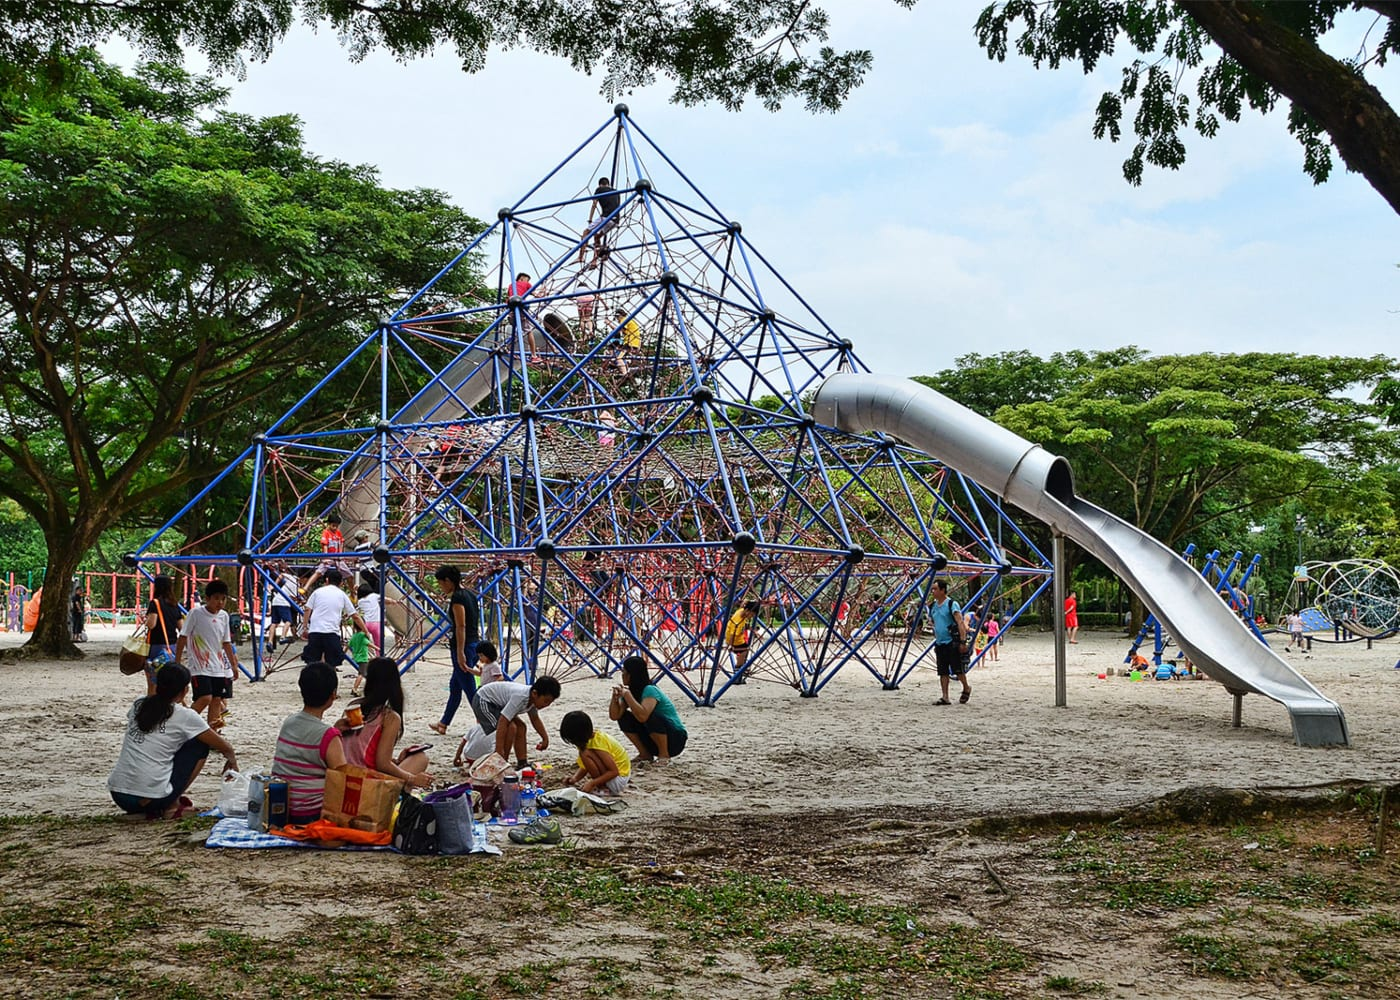 west coast park things to do this week